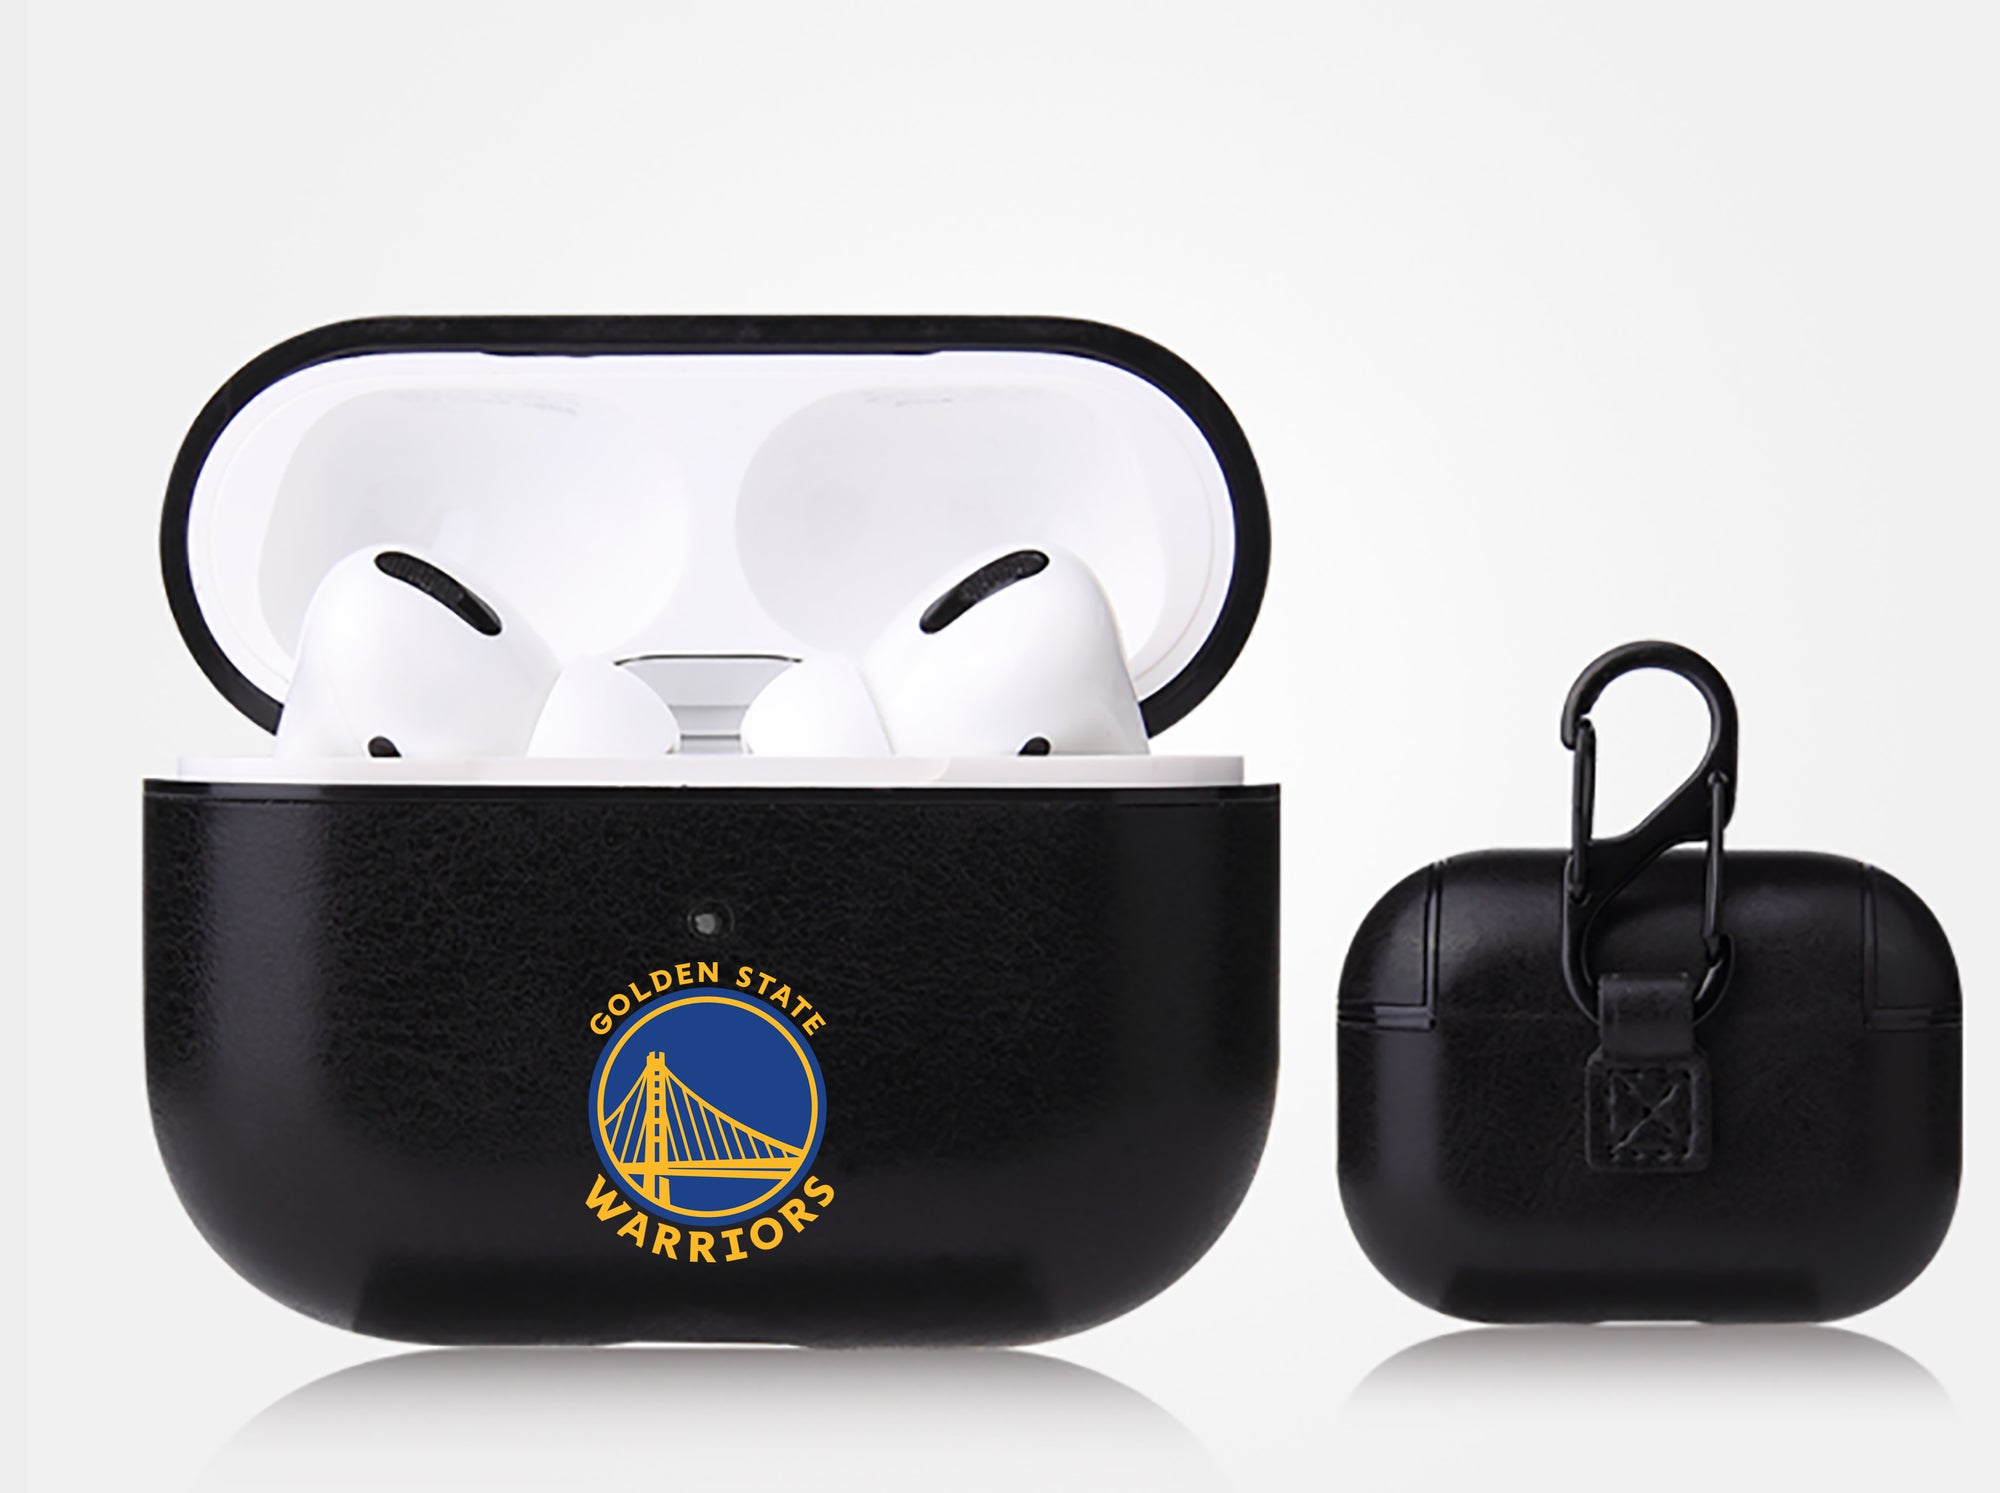 Golden State Warriors Black Apple Air Pod Pro Leatherette